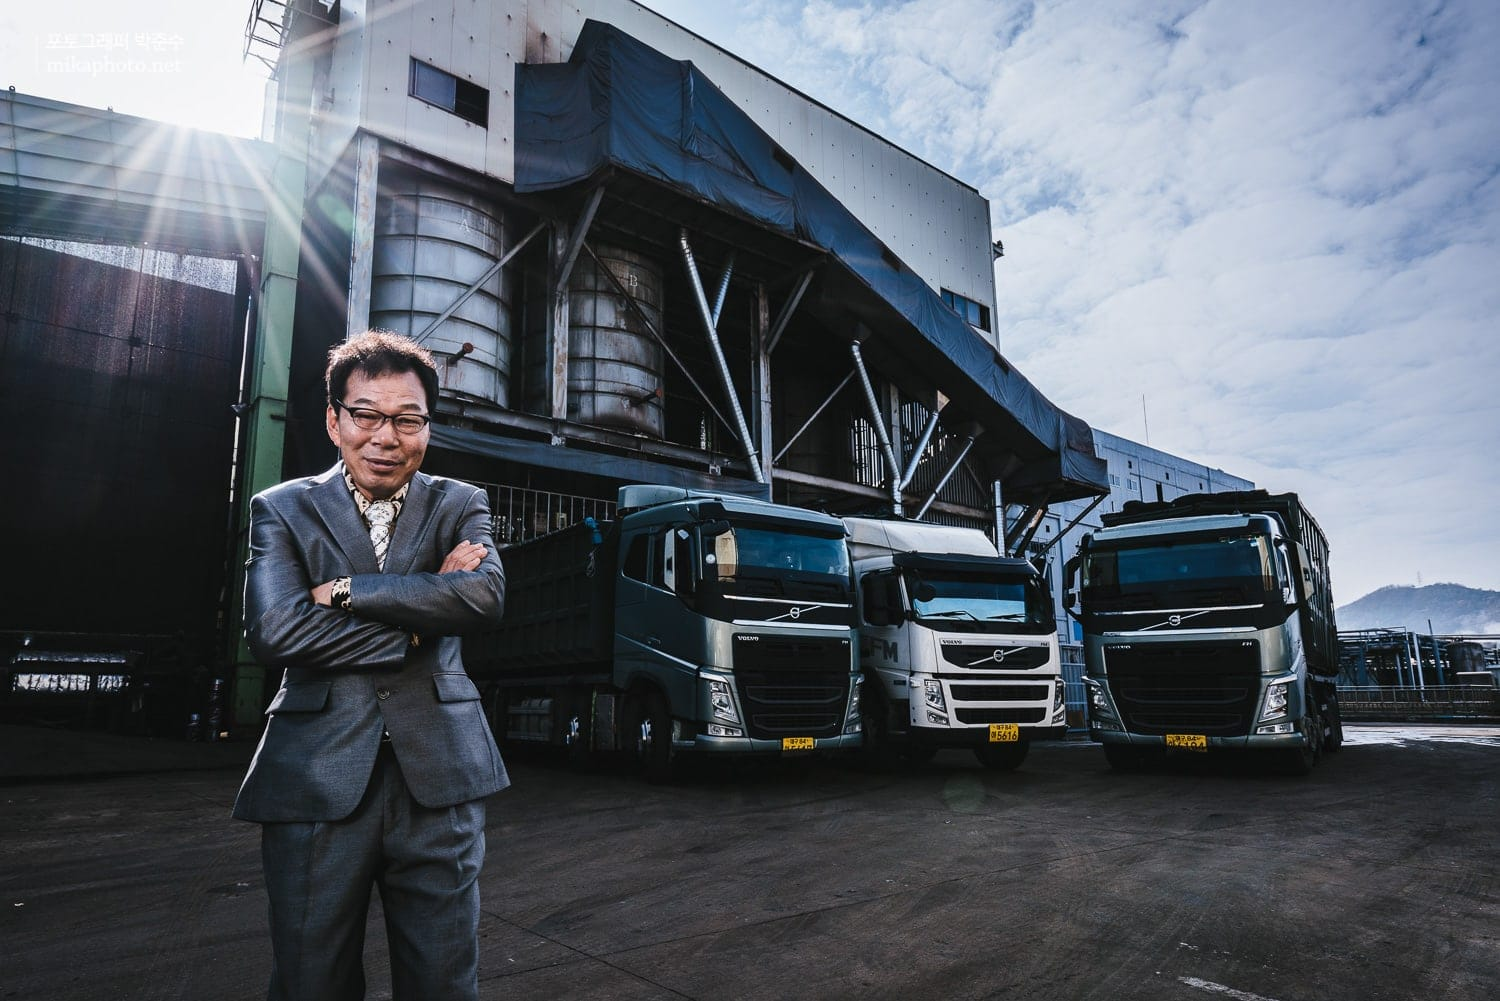 Jin-hyun Yun Type: Corporate Publishing Client: Volvo Trucks Magazine  Agency: Spoon in Sweden Date: Nov 2015